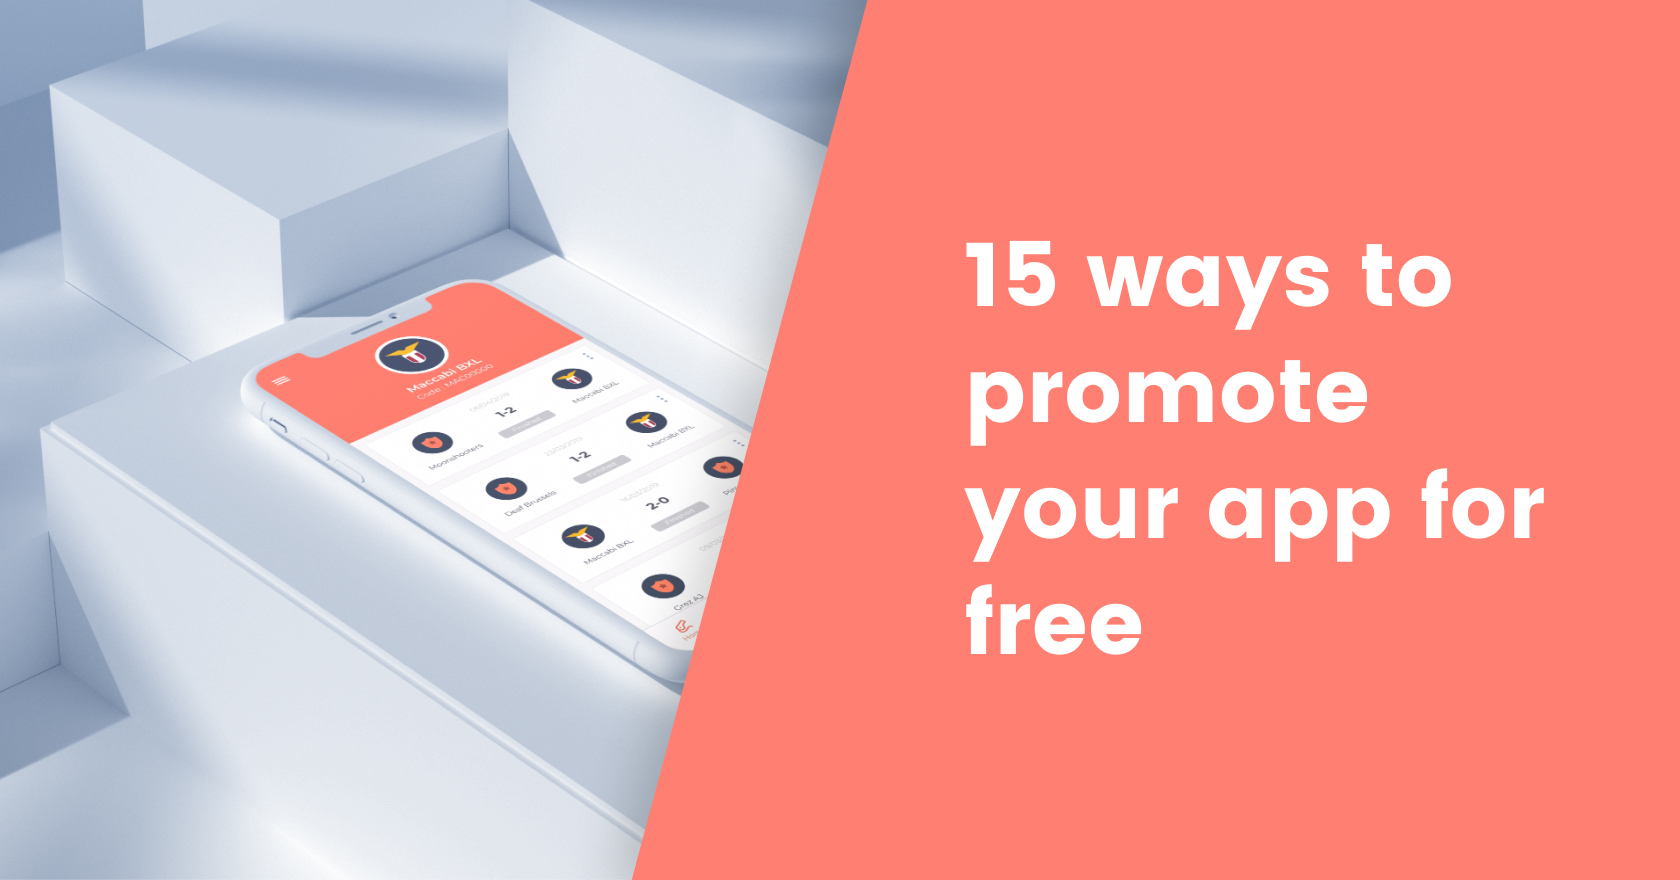 Nightborn - 15 ways to promote your app for free